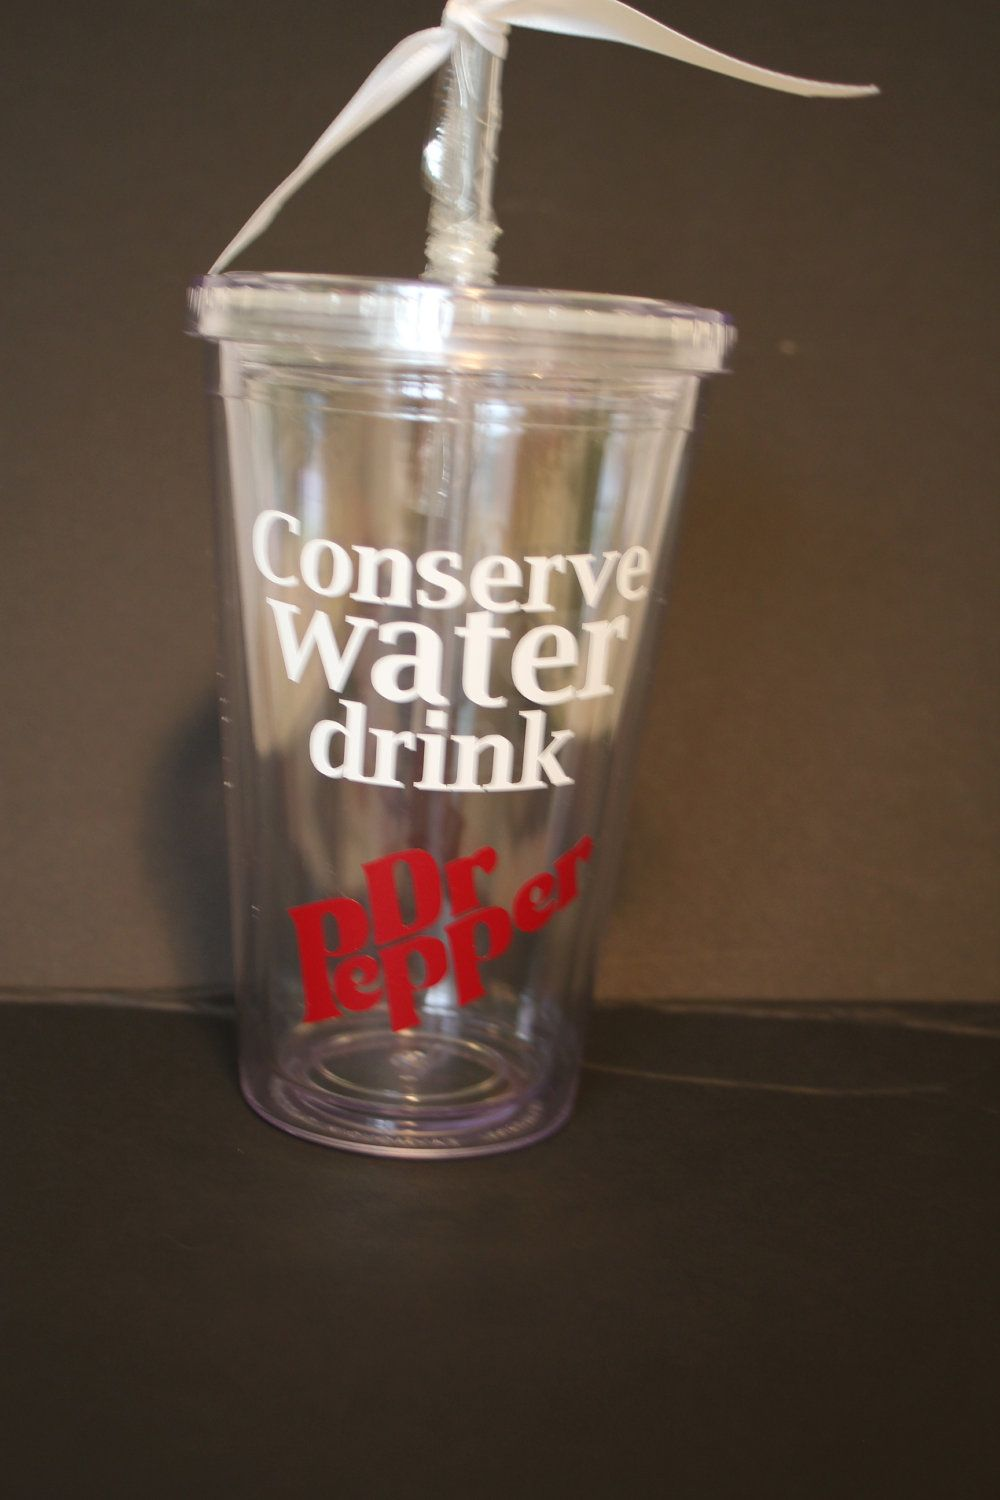 It's Only $1250 Conserve Water Drink Dr